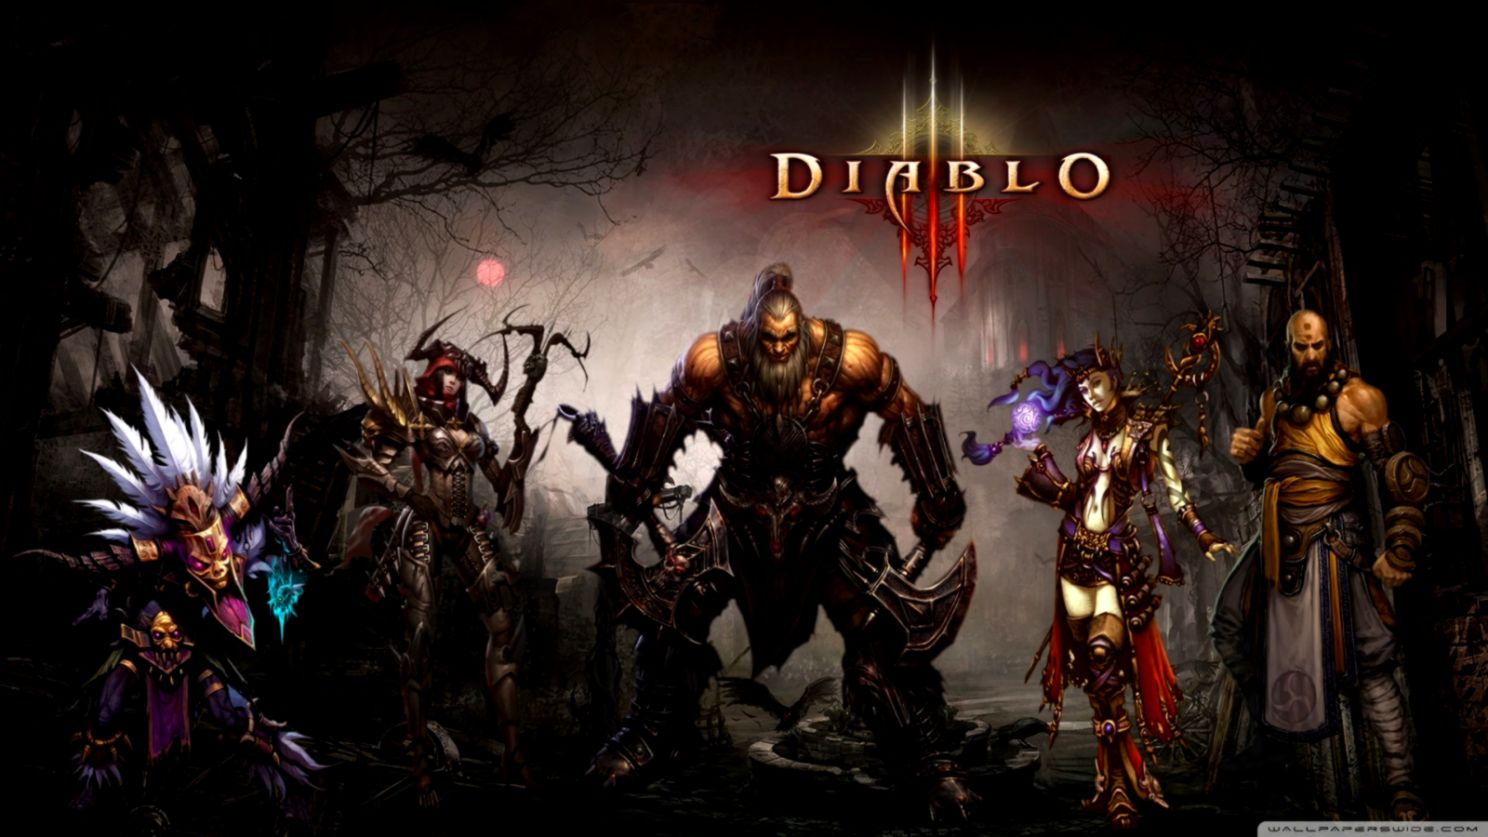 Diablo 3 Wallpaper 1920x1080 Hd Posted By Christopher Simpson